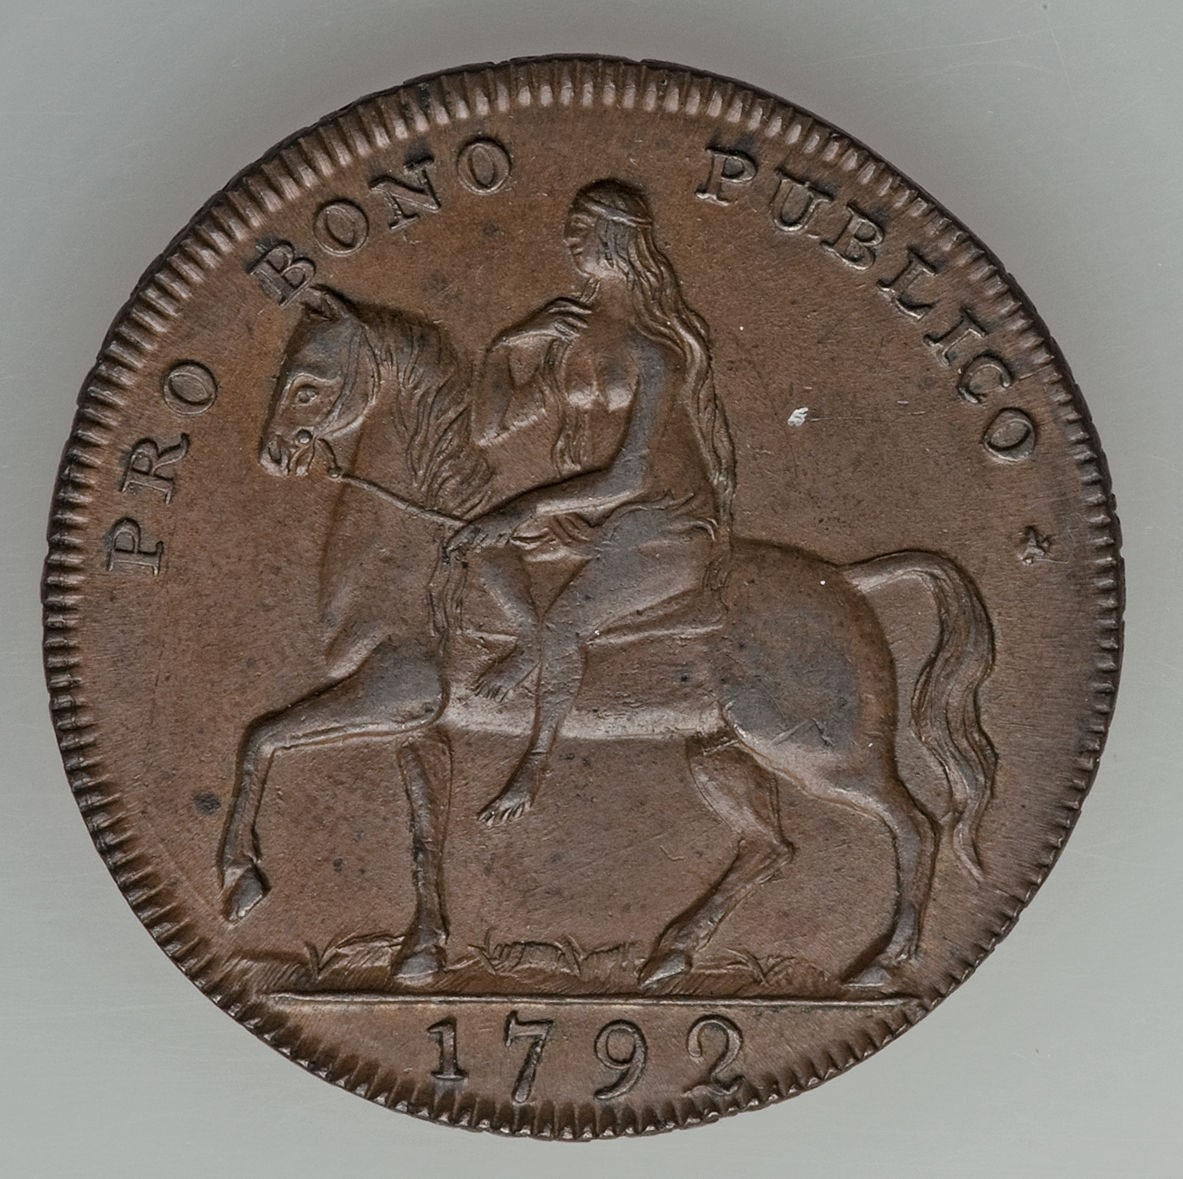 Privately minted 1792-1794 halfpenny token issued during Great Britain's Condor token craze depicts the legendary Lady Godiva and carries the legend PRO BONO PUBLICO as do many Condor tokens, meaning